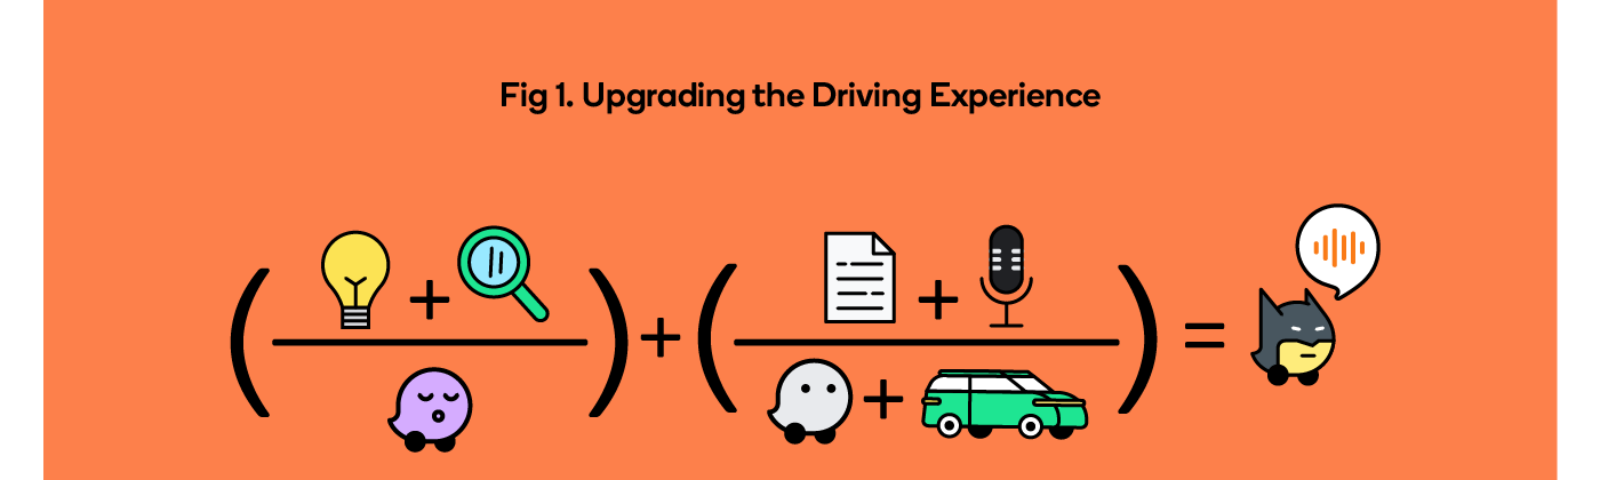 The equation for an upgraded driving experience